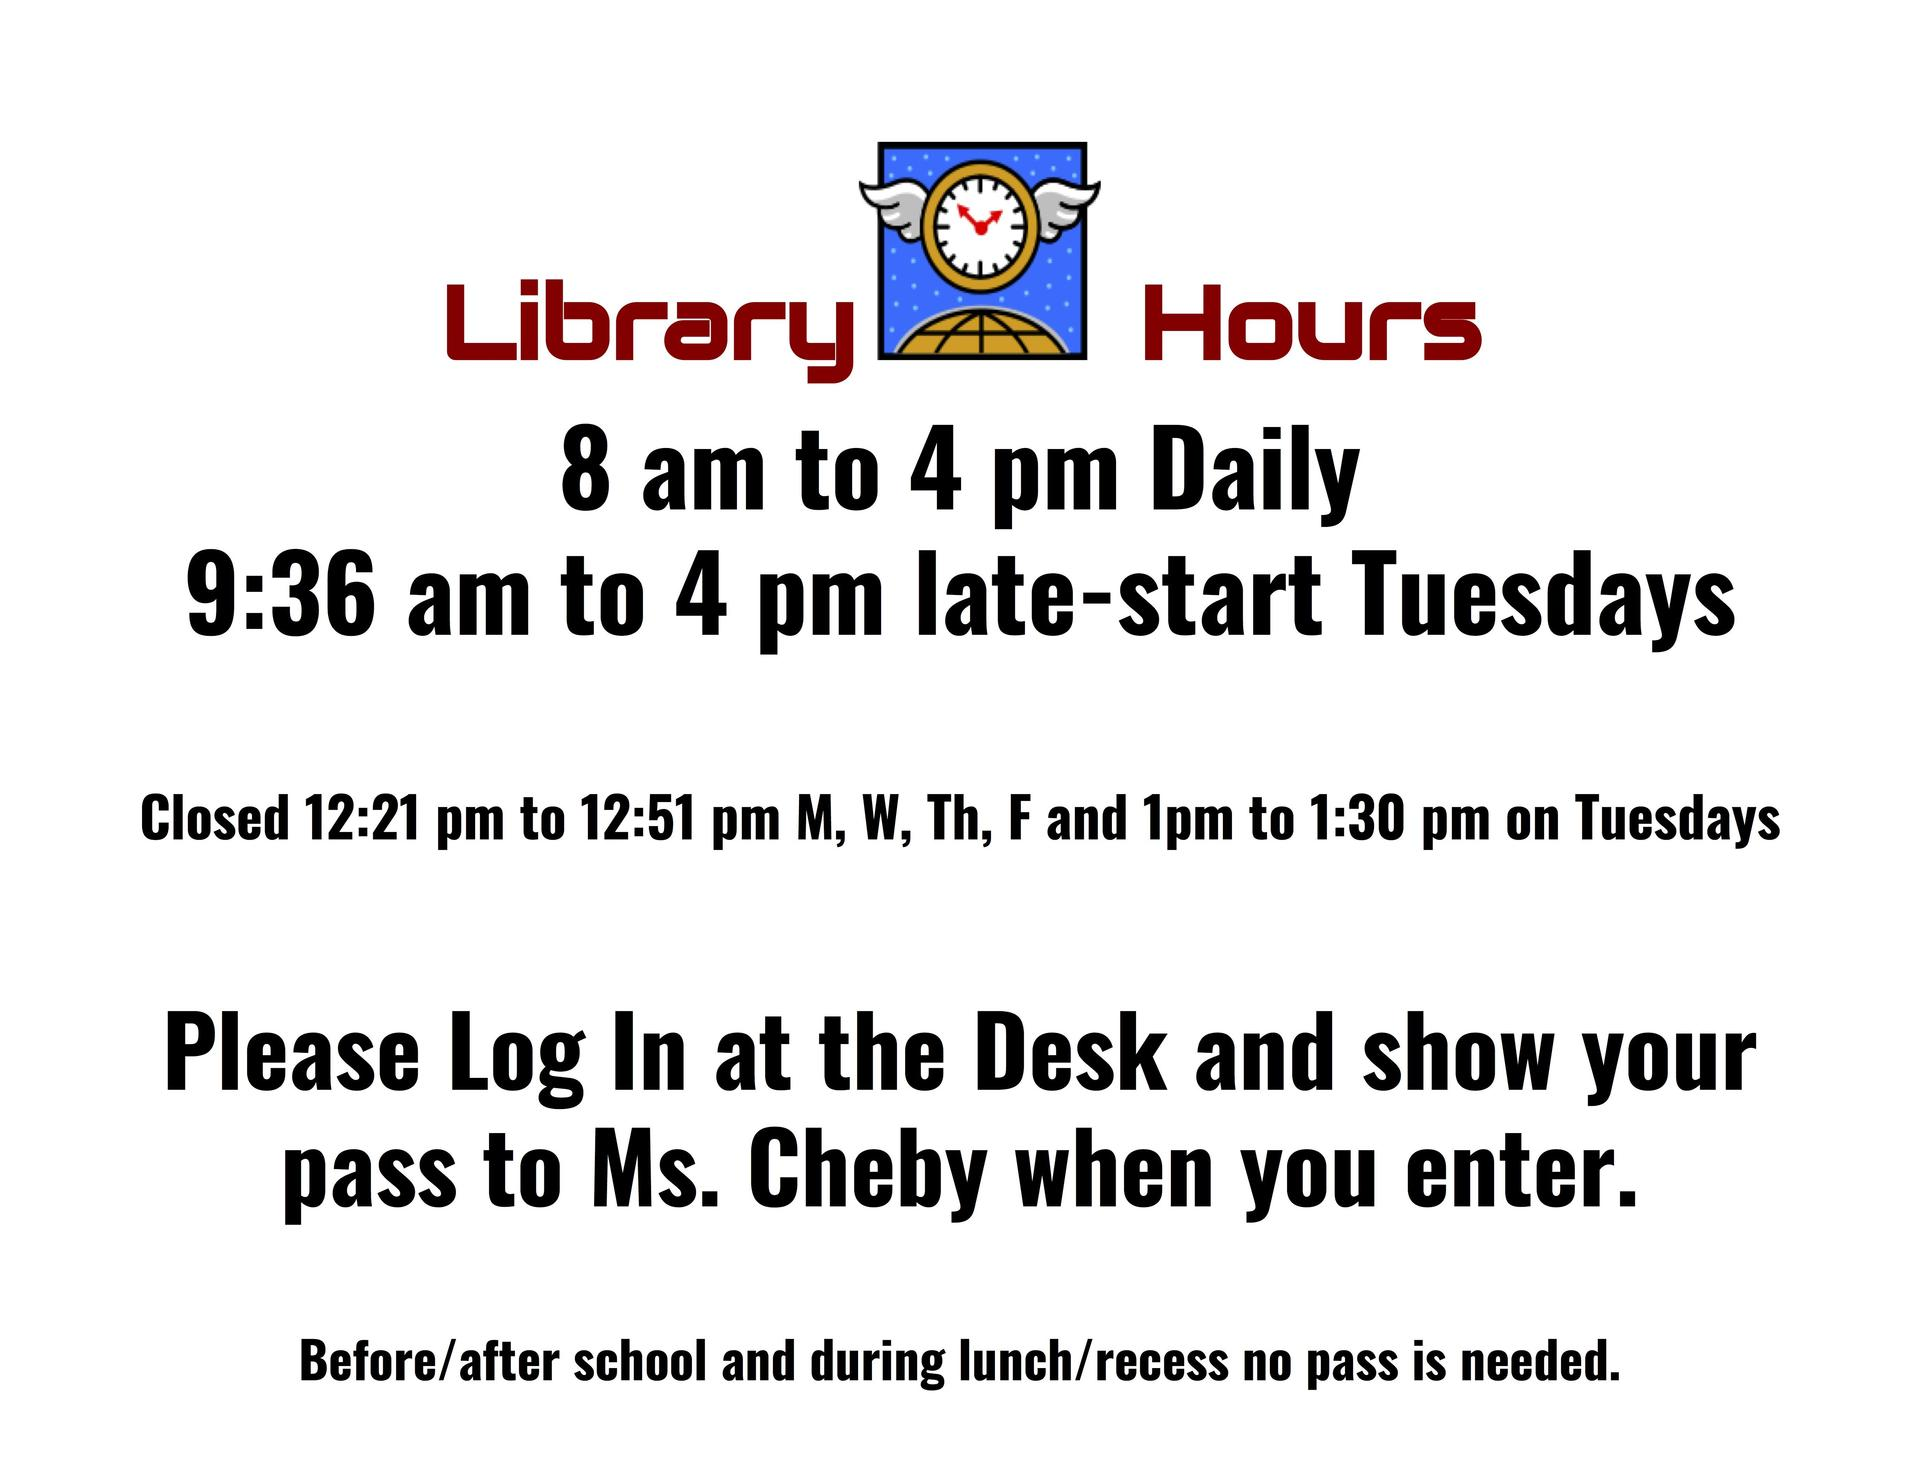 Library Hours 8-4 except Tuesday opens at 9:36. Closed for lunch the 1st 30min of period 3